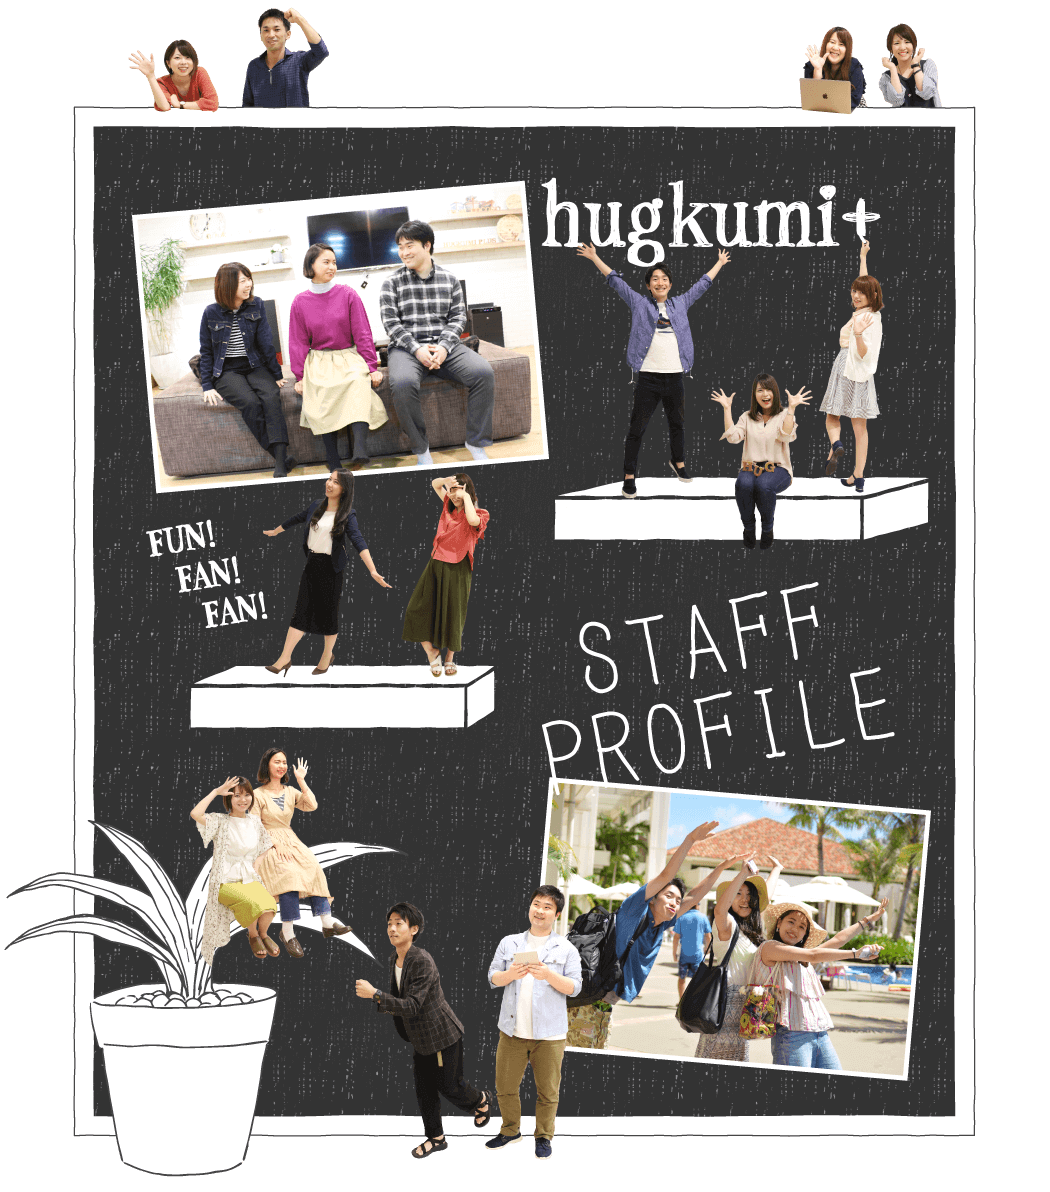 hugkumi+ fun!fan!fan! STAFF PROFILE